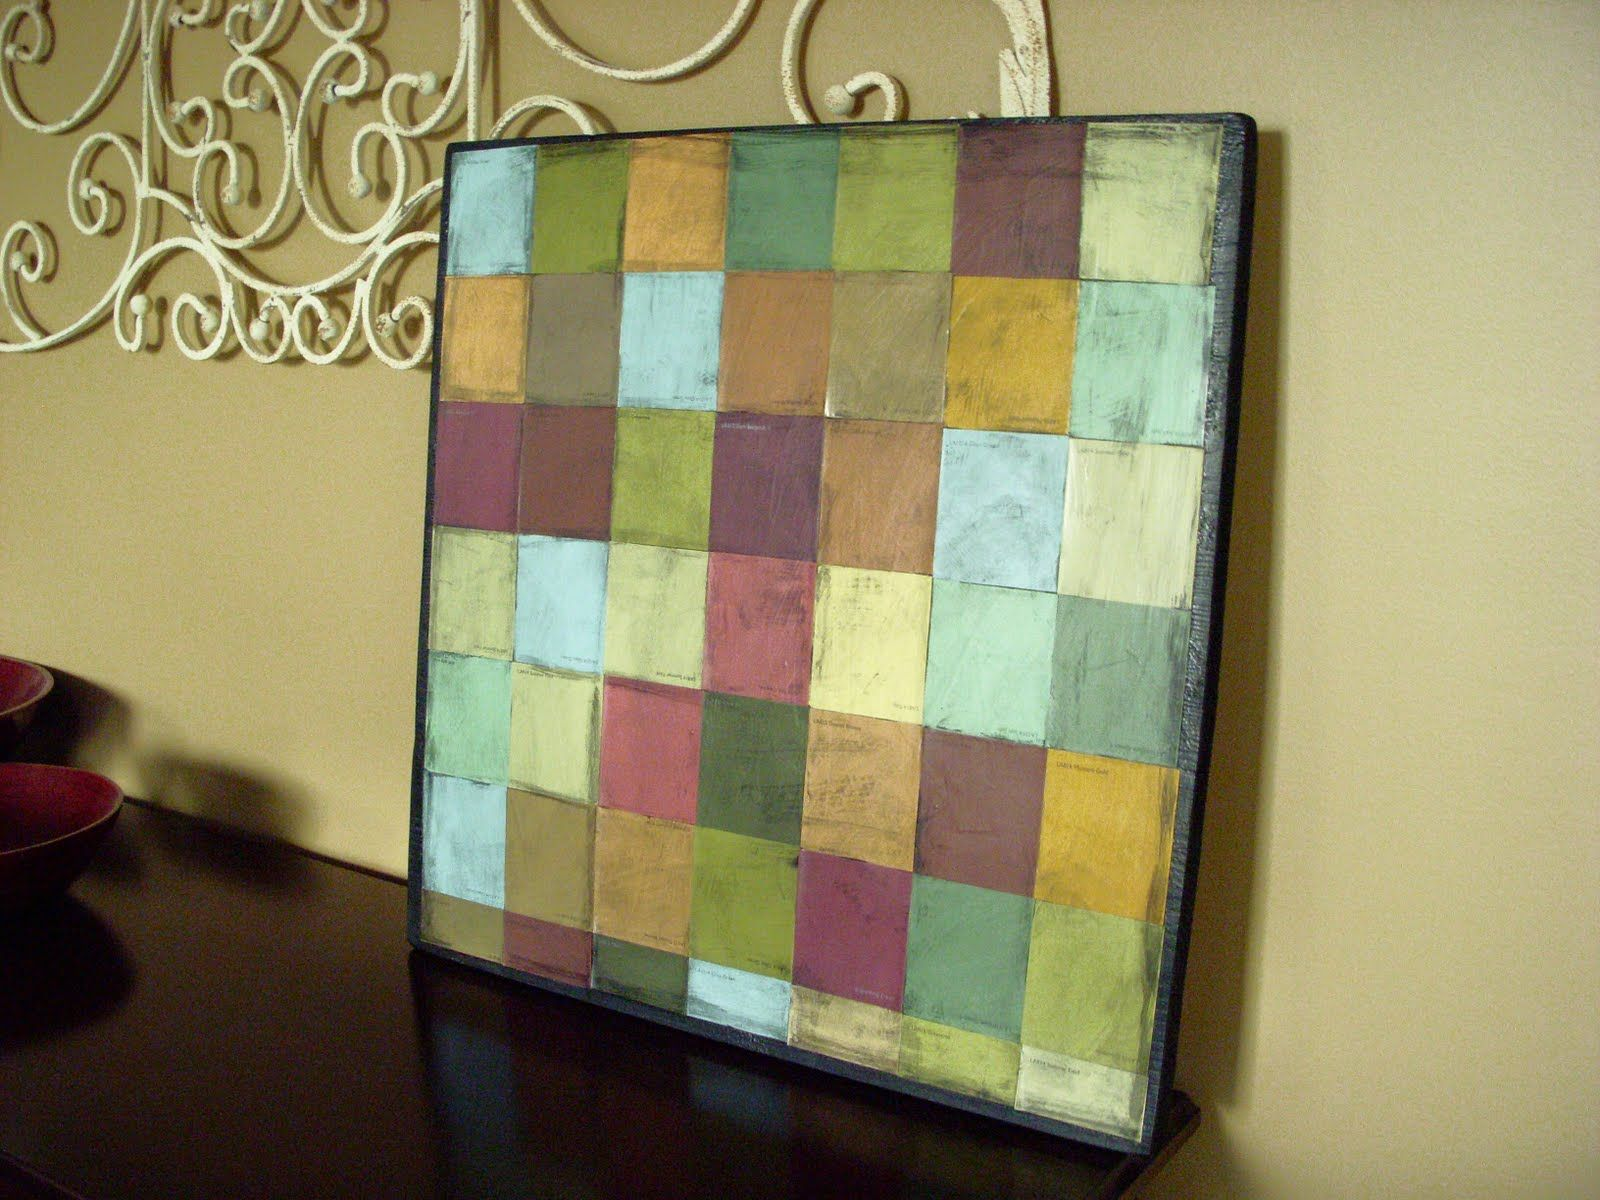 Paint chip mosaic art | Paint chips, Paint chip art and Mosaics